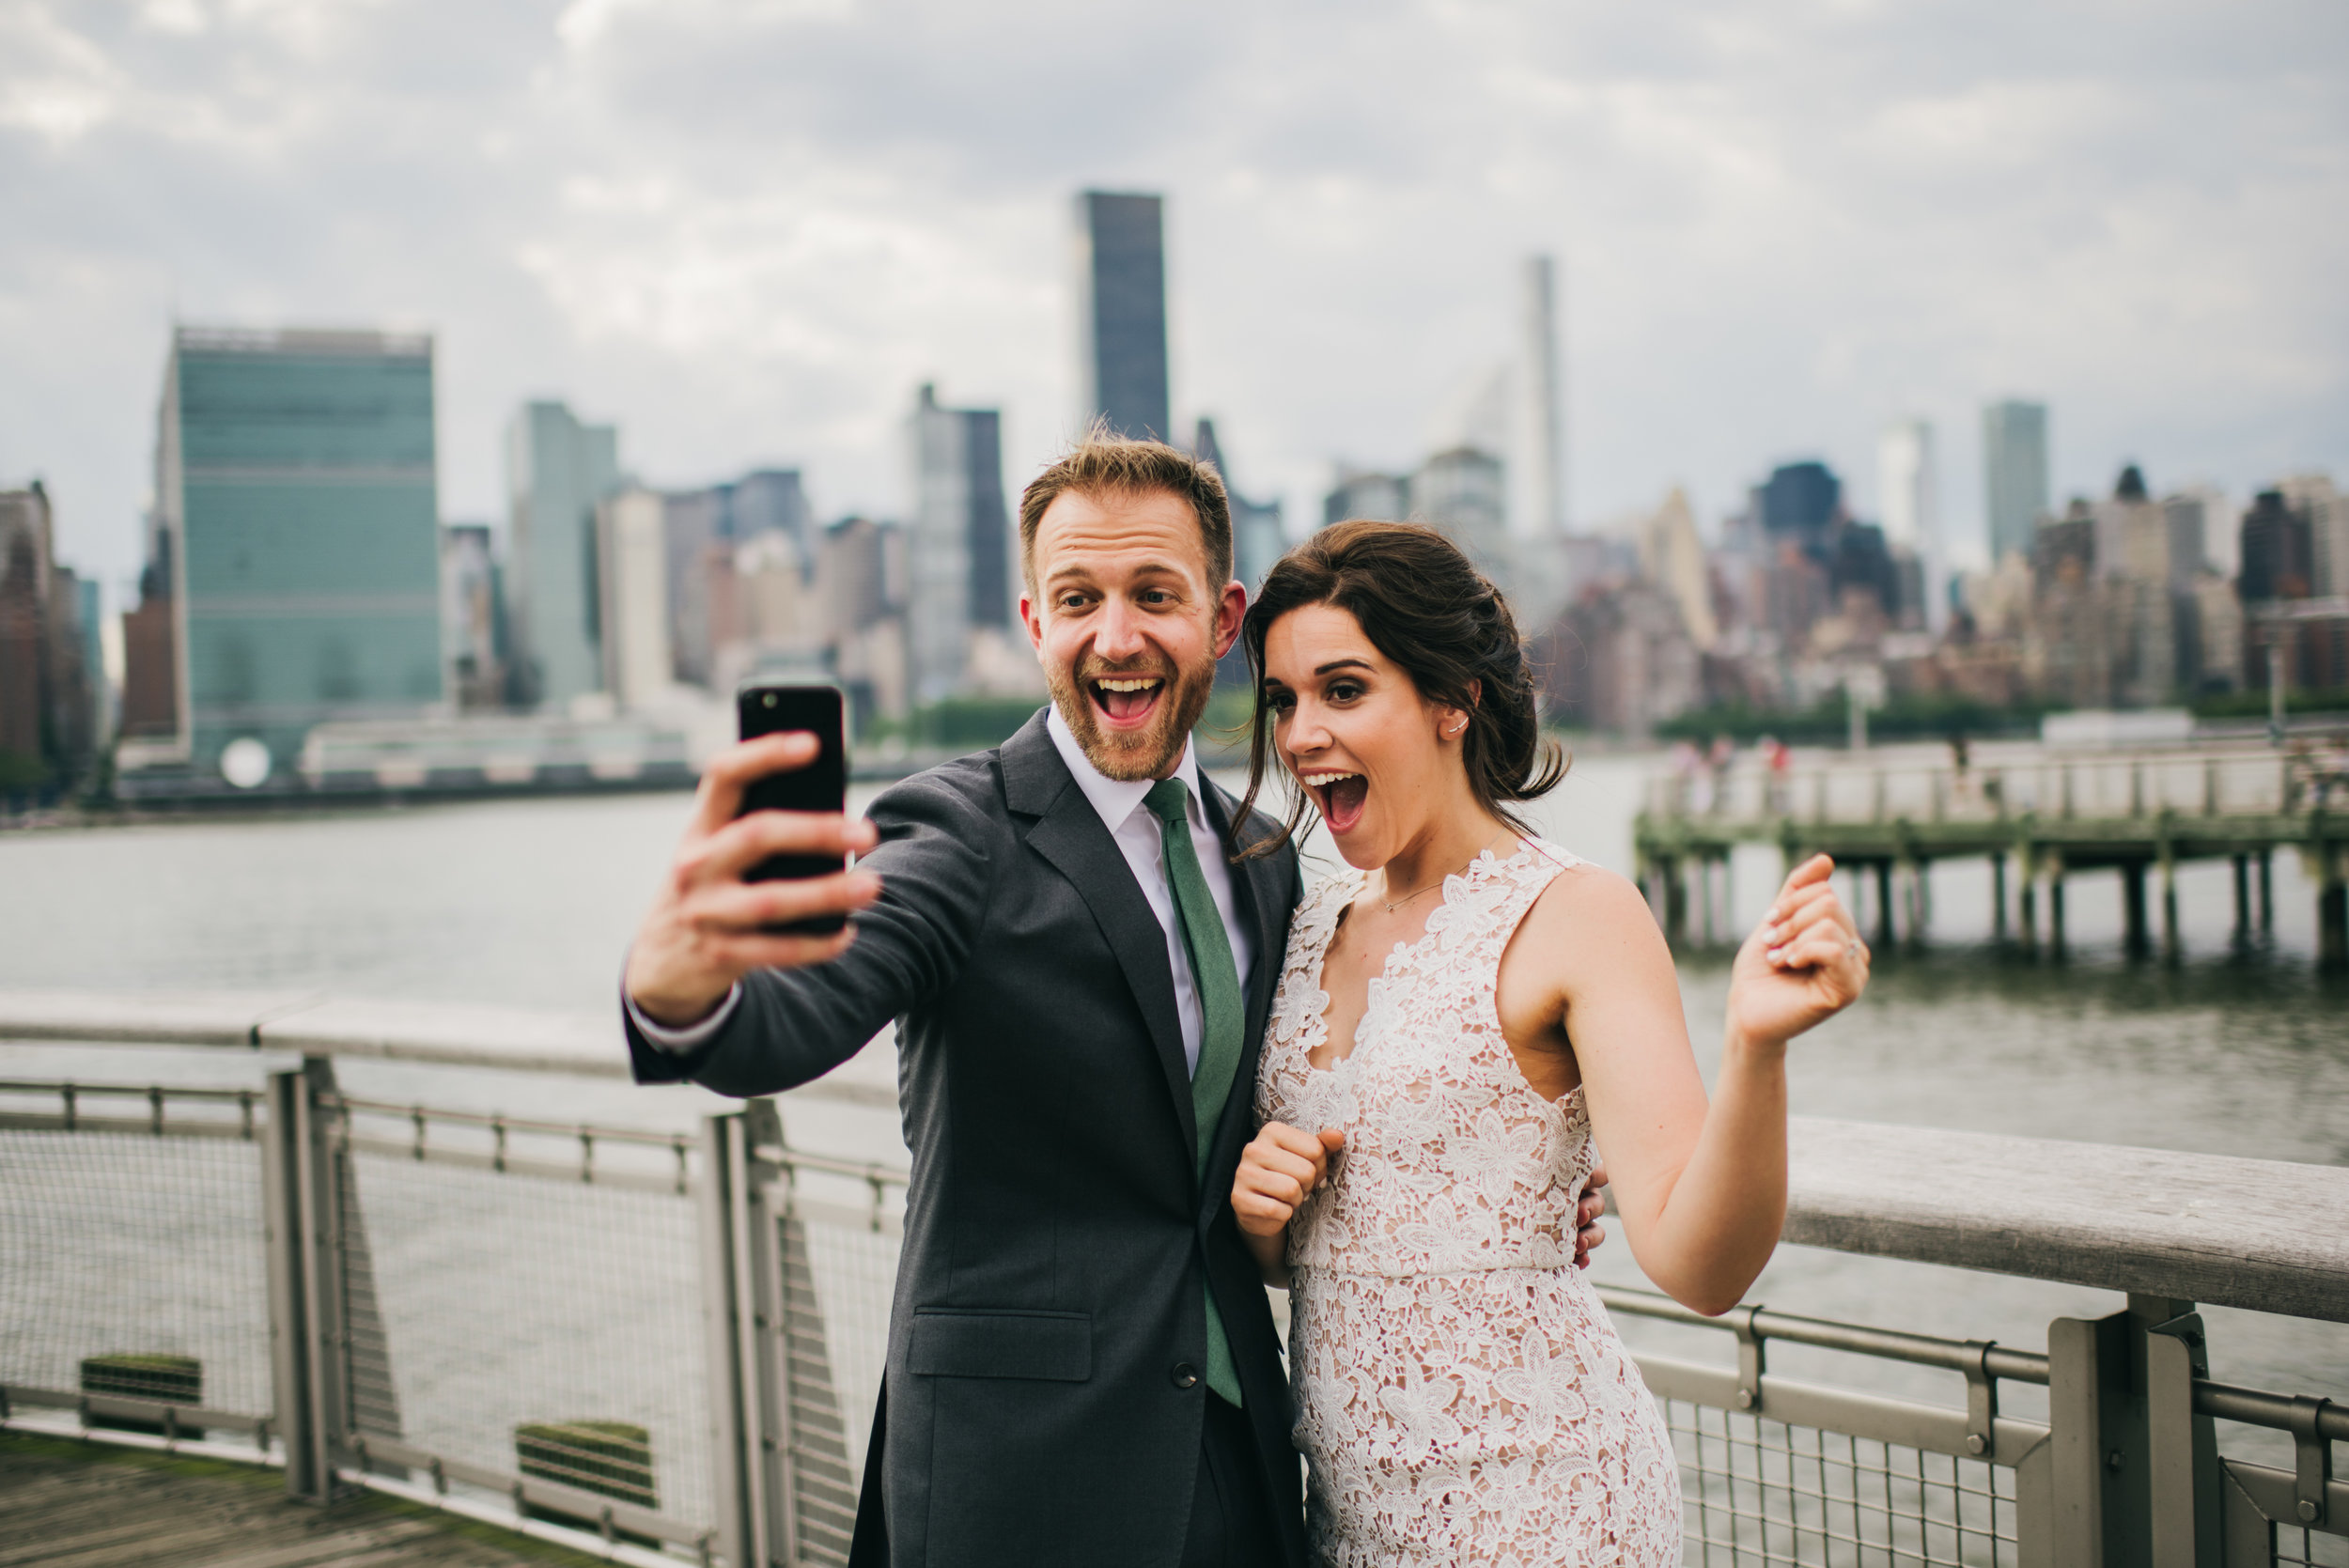 AMANDA & MATT - LE FANFARE NYC - INTIMATE WEDDING PHOTOGRAPHER by CHI-CHI ARI-445.jpg